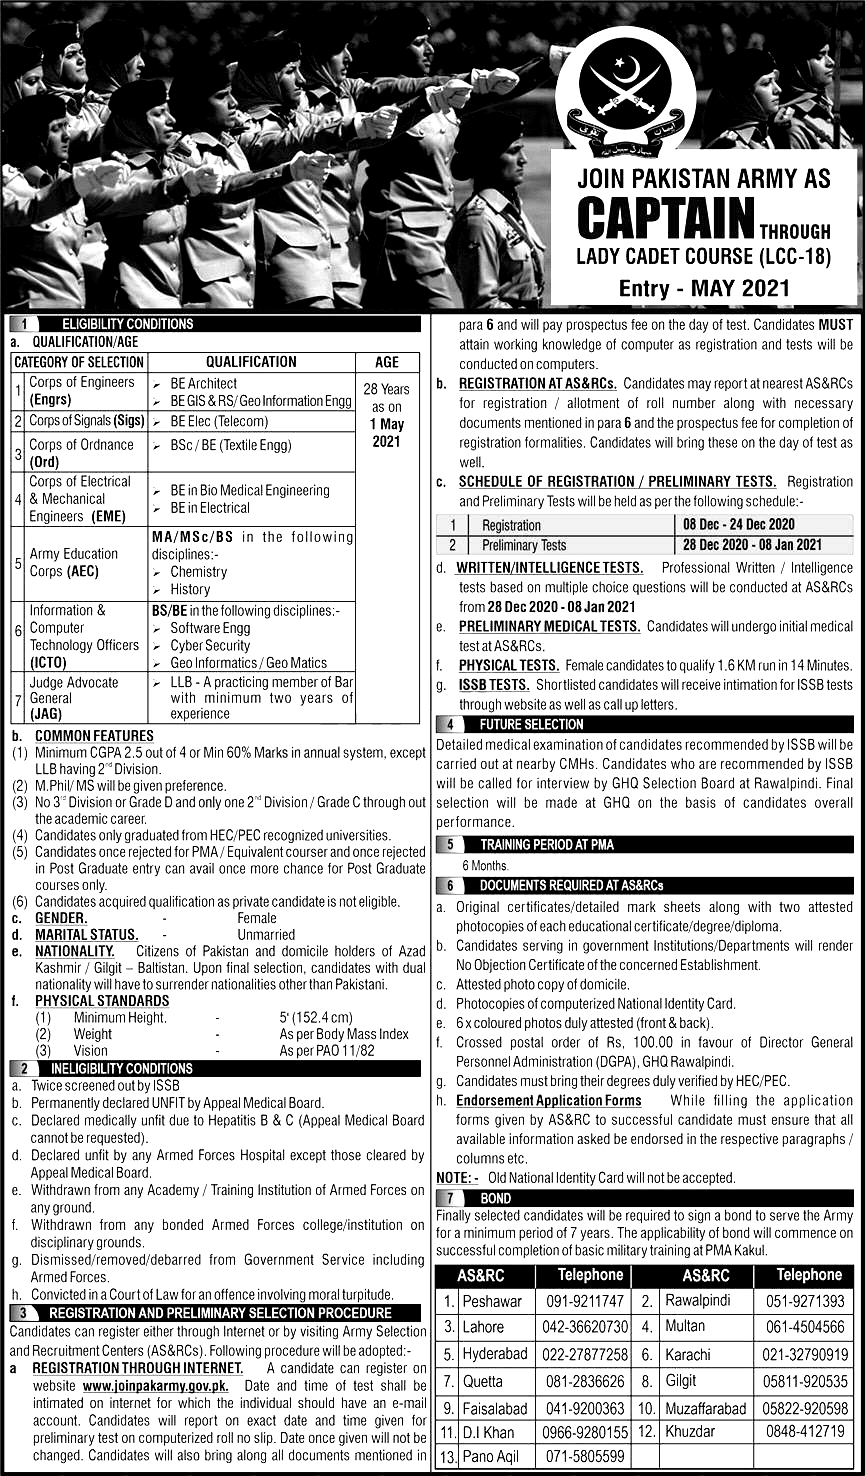 Join Pak Army as Captain through Lady Cadet Course 2021 Registration Online Eligibility Criteria